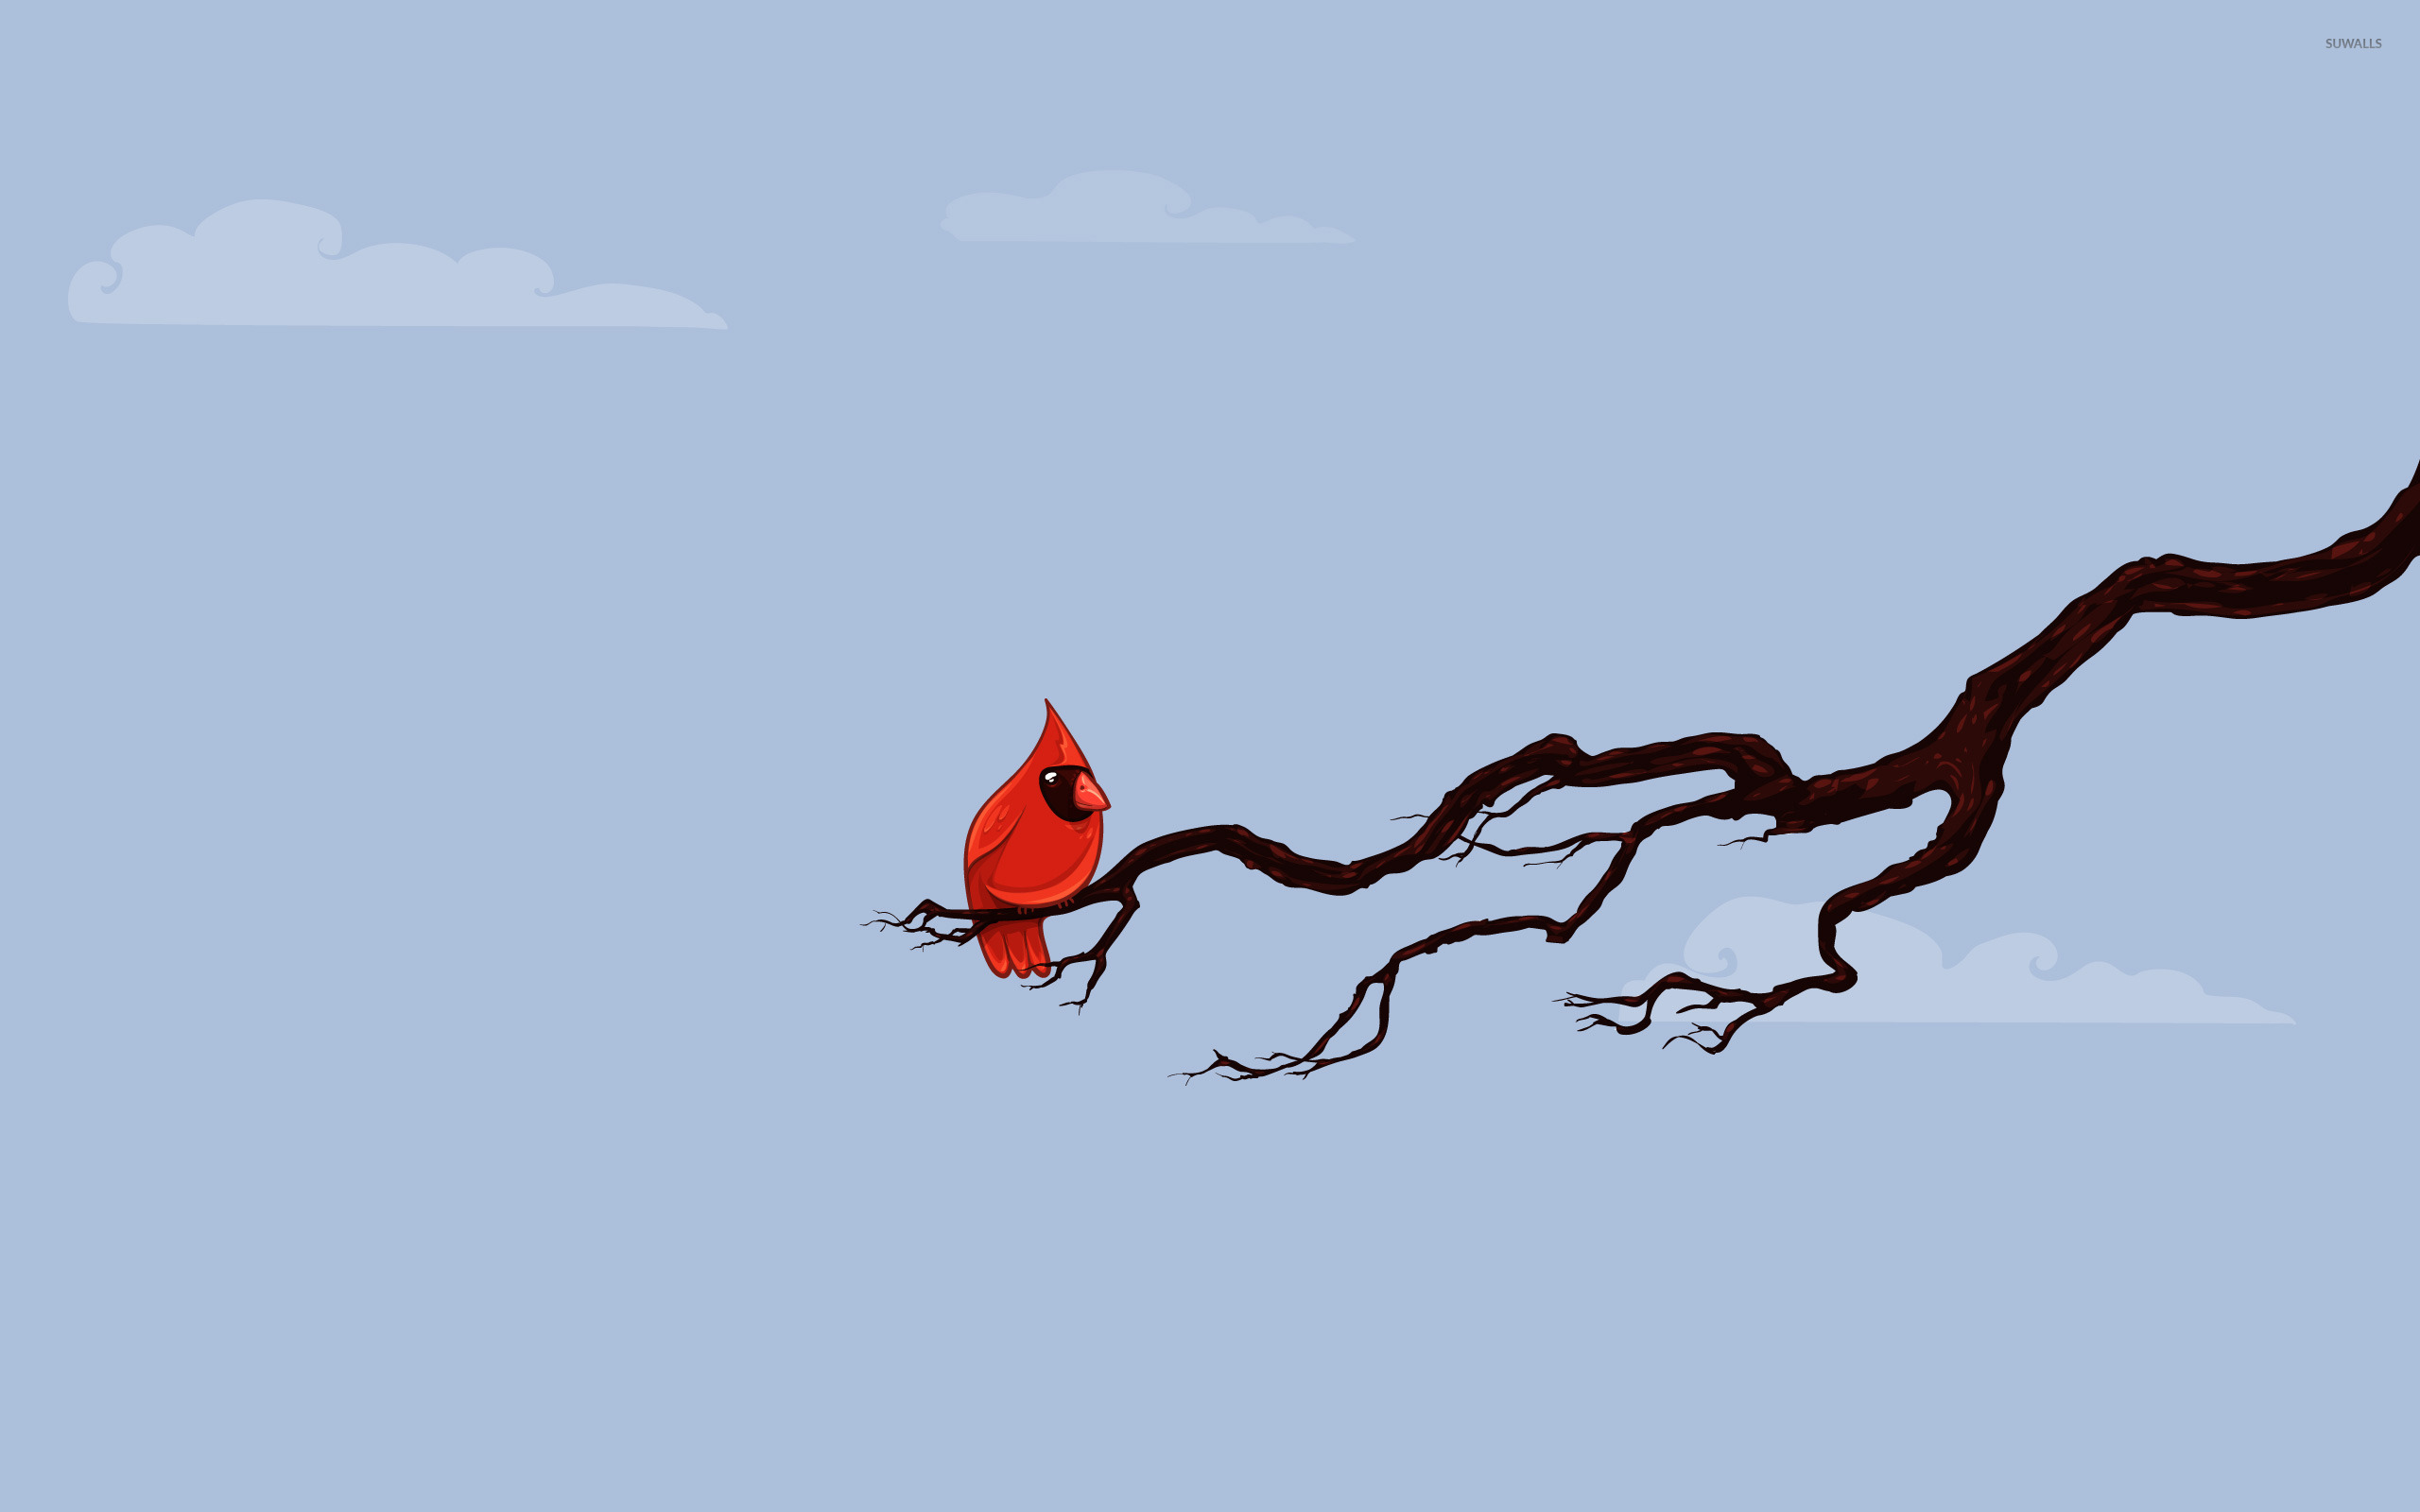 Red bird on a branch wallpaper   Vector wallpapers   17532 2560x1600